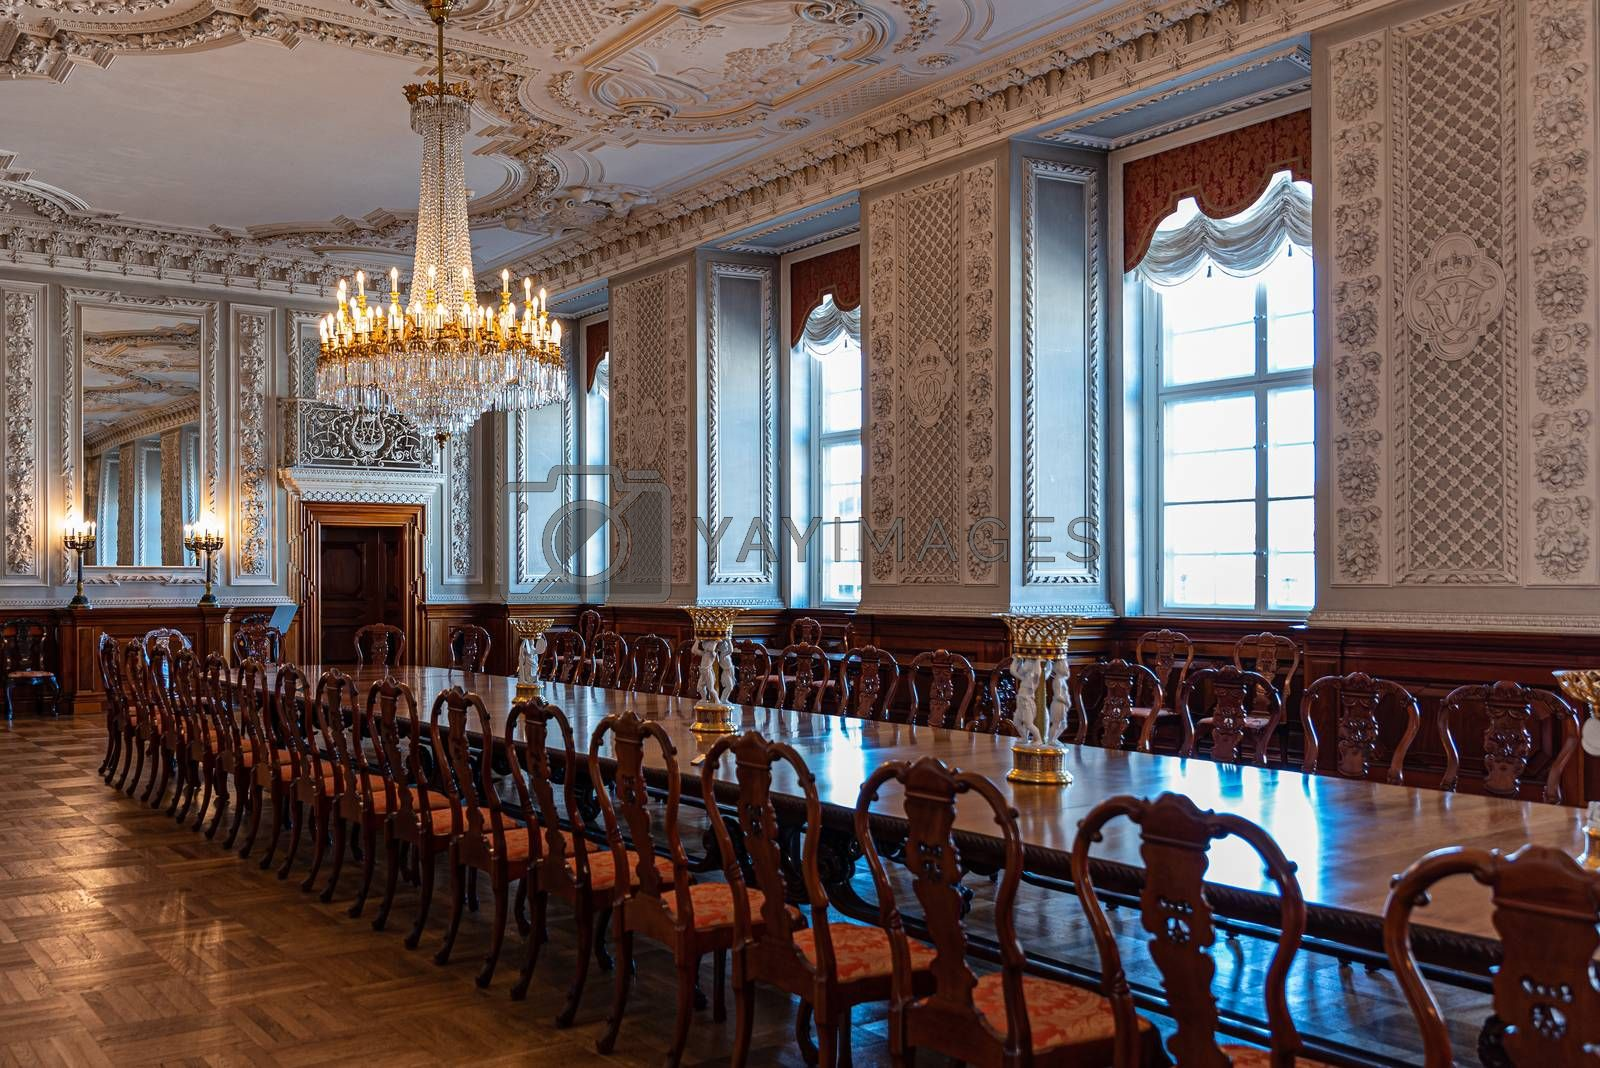 Interiors of the royal halls in the Christiansborg Palace in Copenhagen, Denmark, large antique table and crystal chandelier